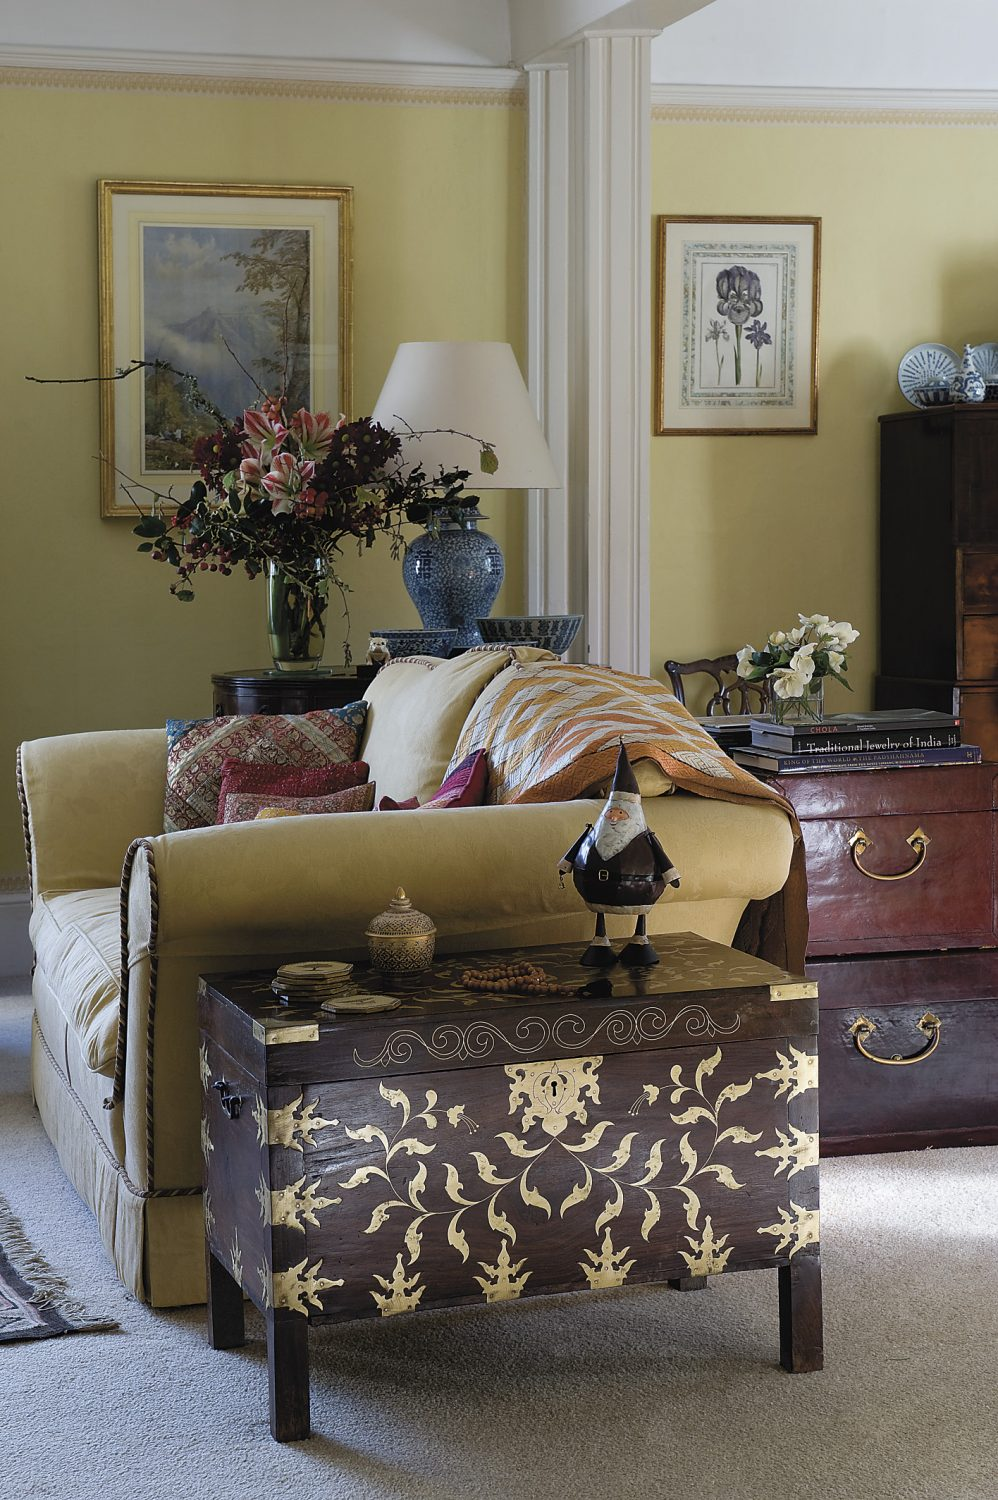 wooden chests in the drawing room were brought back from the family's travels